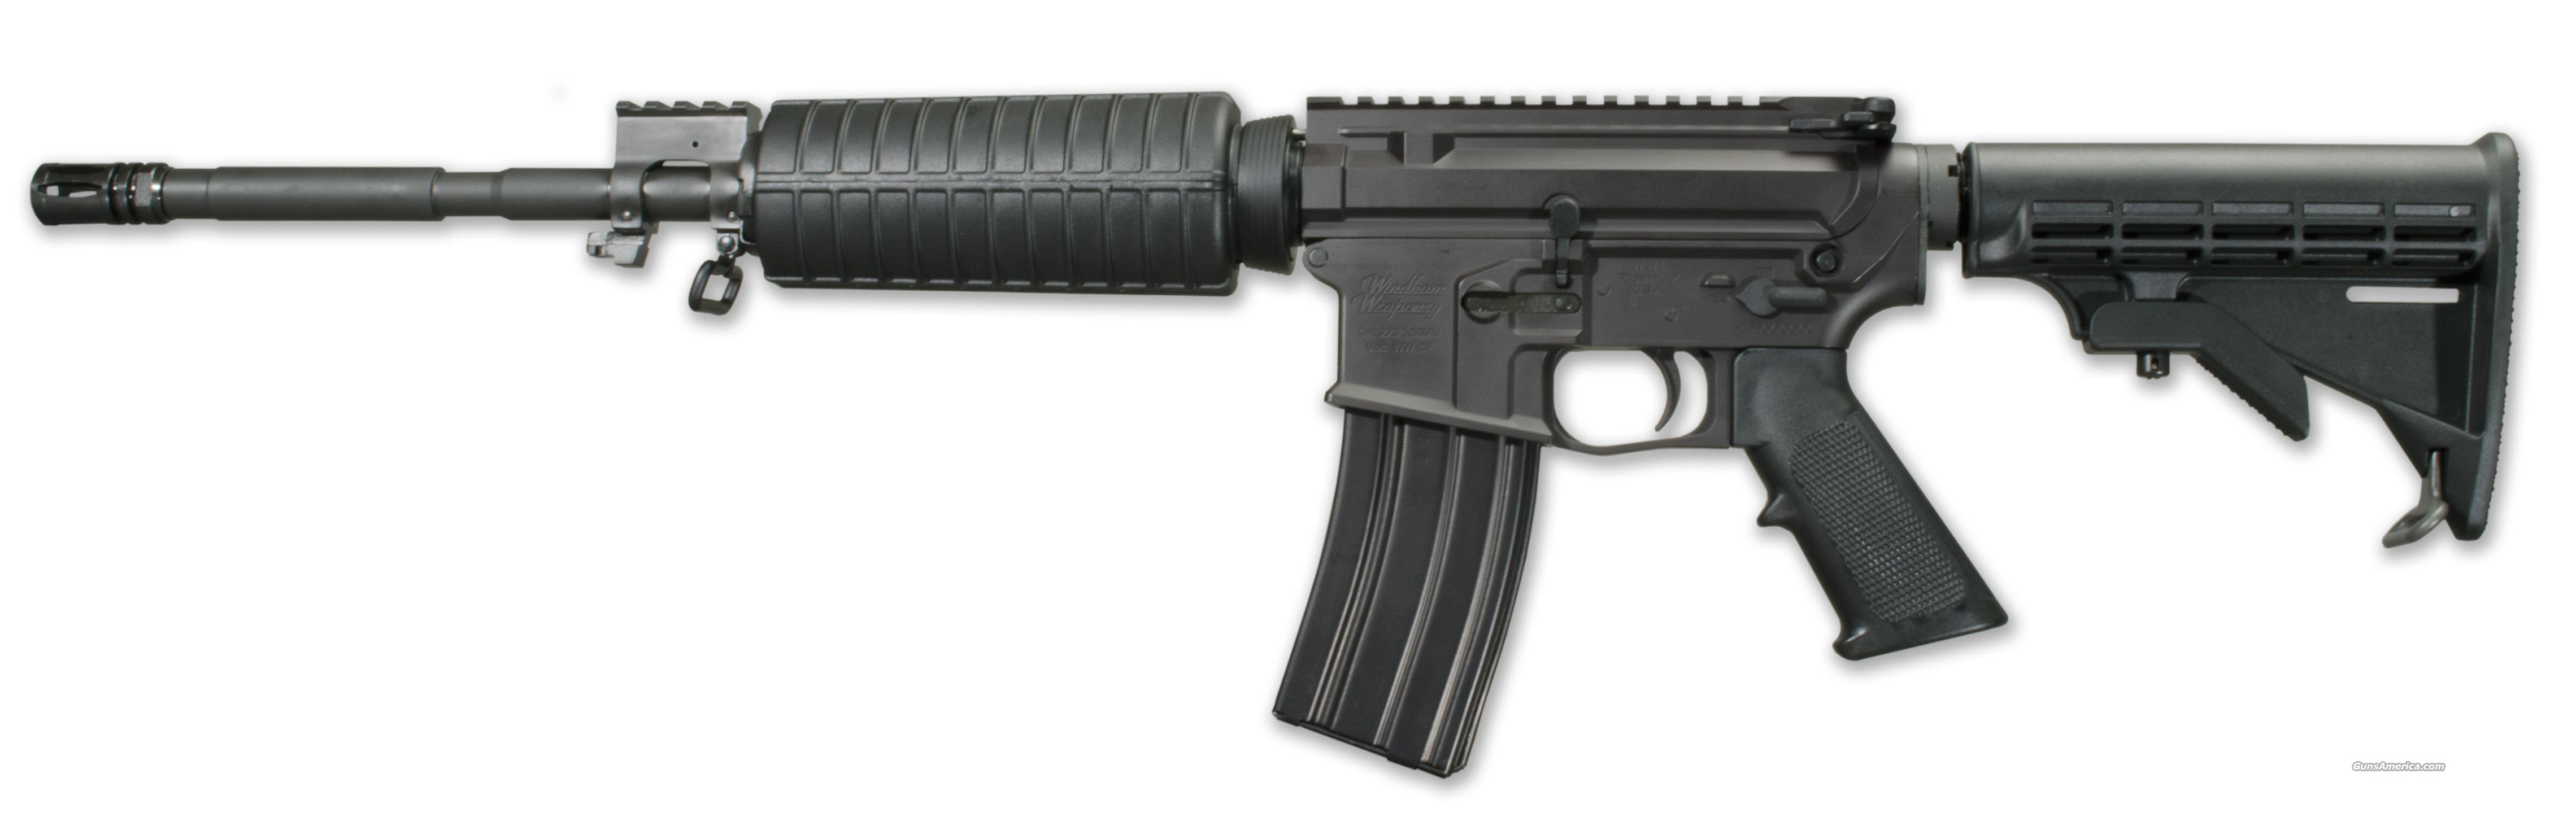 Windham Weaponry  AR 15 CF Receiver 223/5.56mm  Guns > Rifles > AR-15 Rifles - Small Manufacturers > Complete Rifle